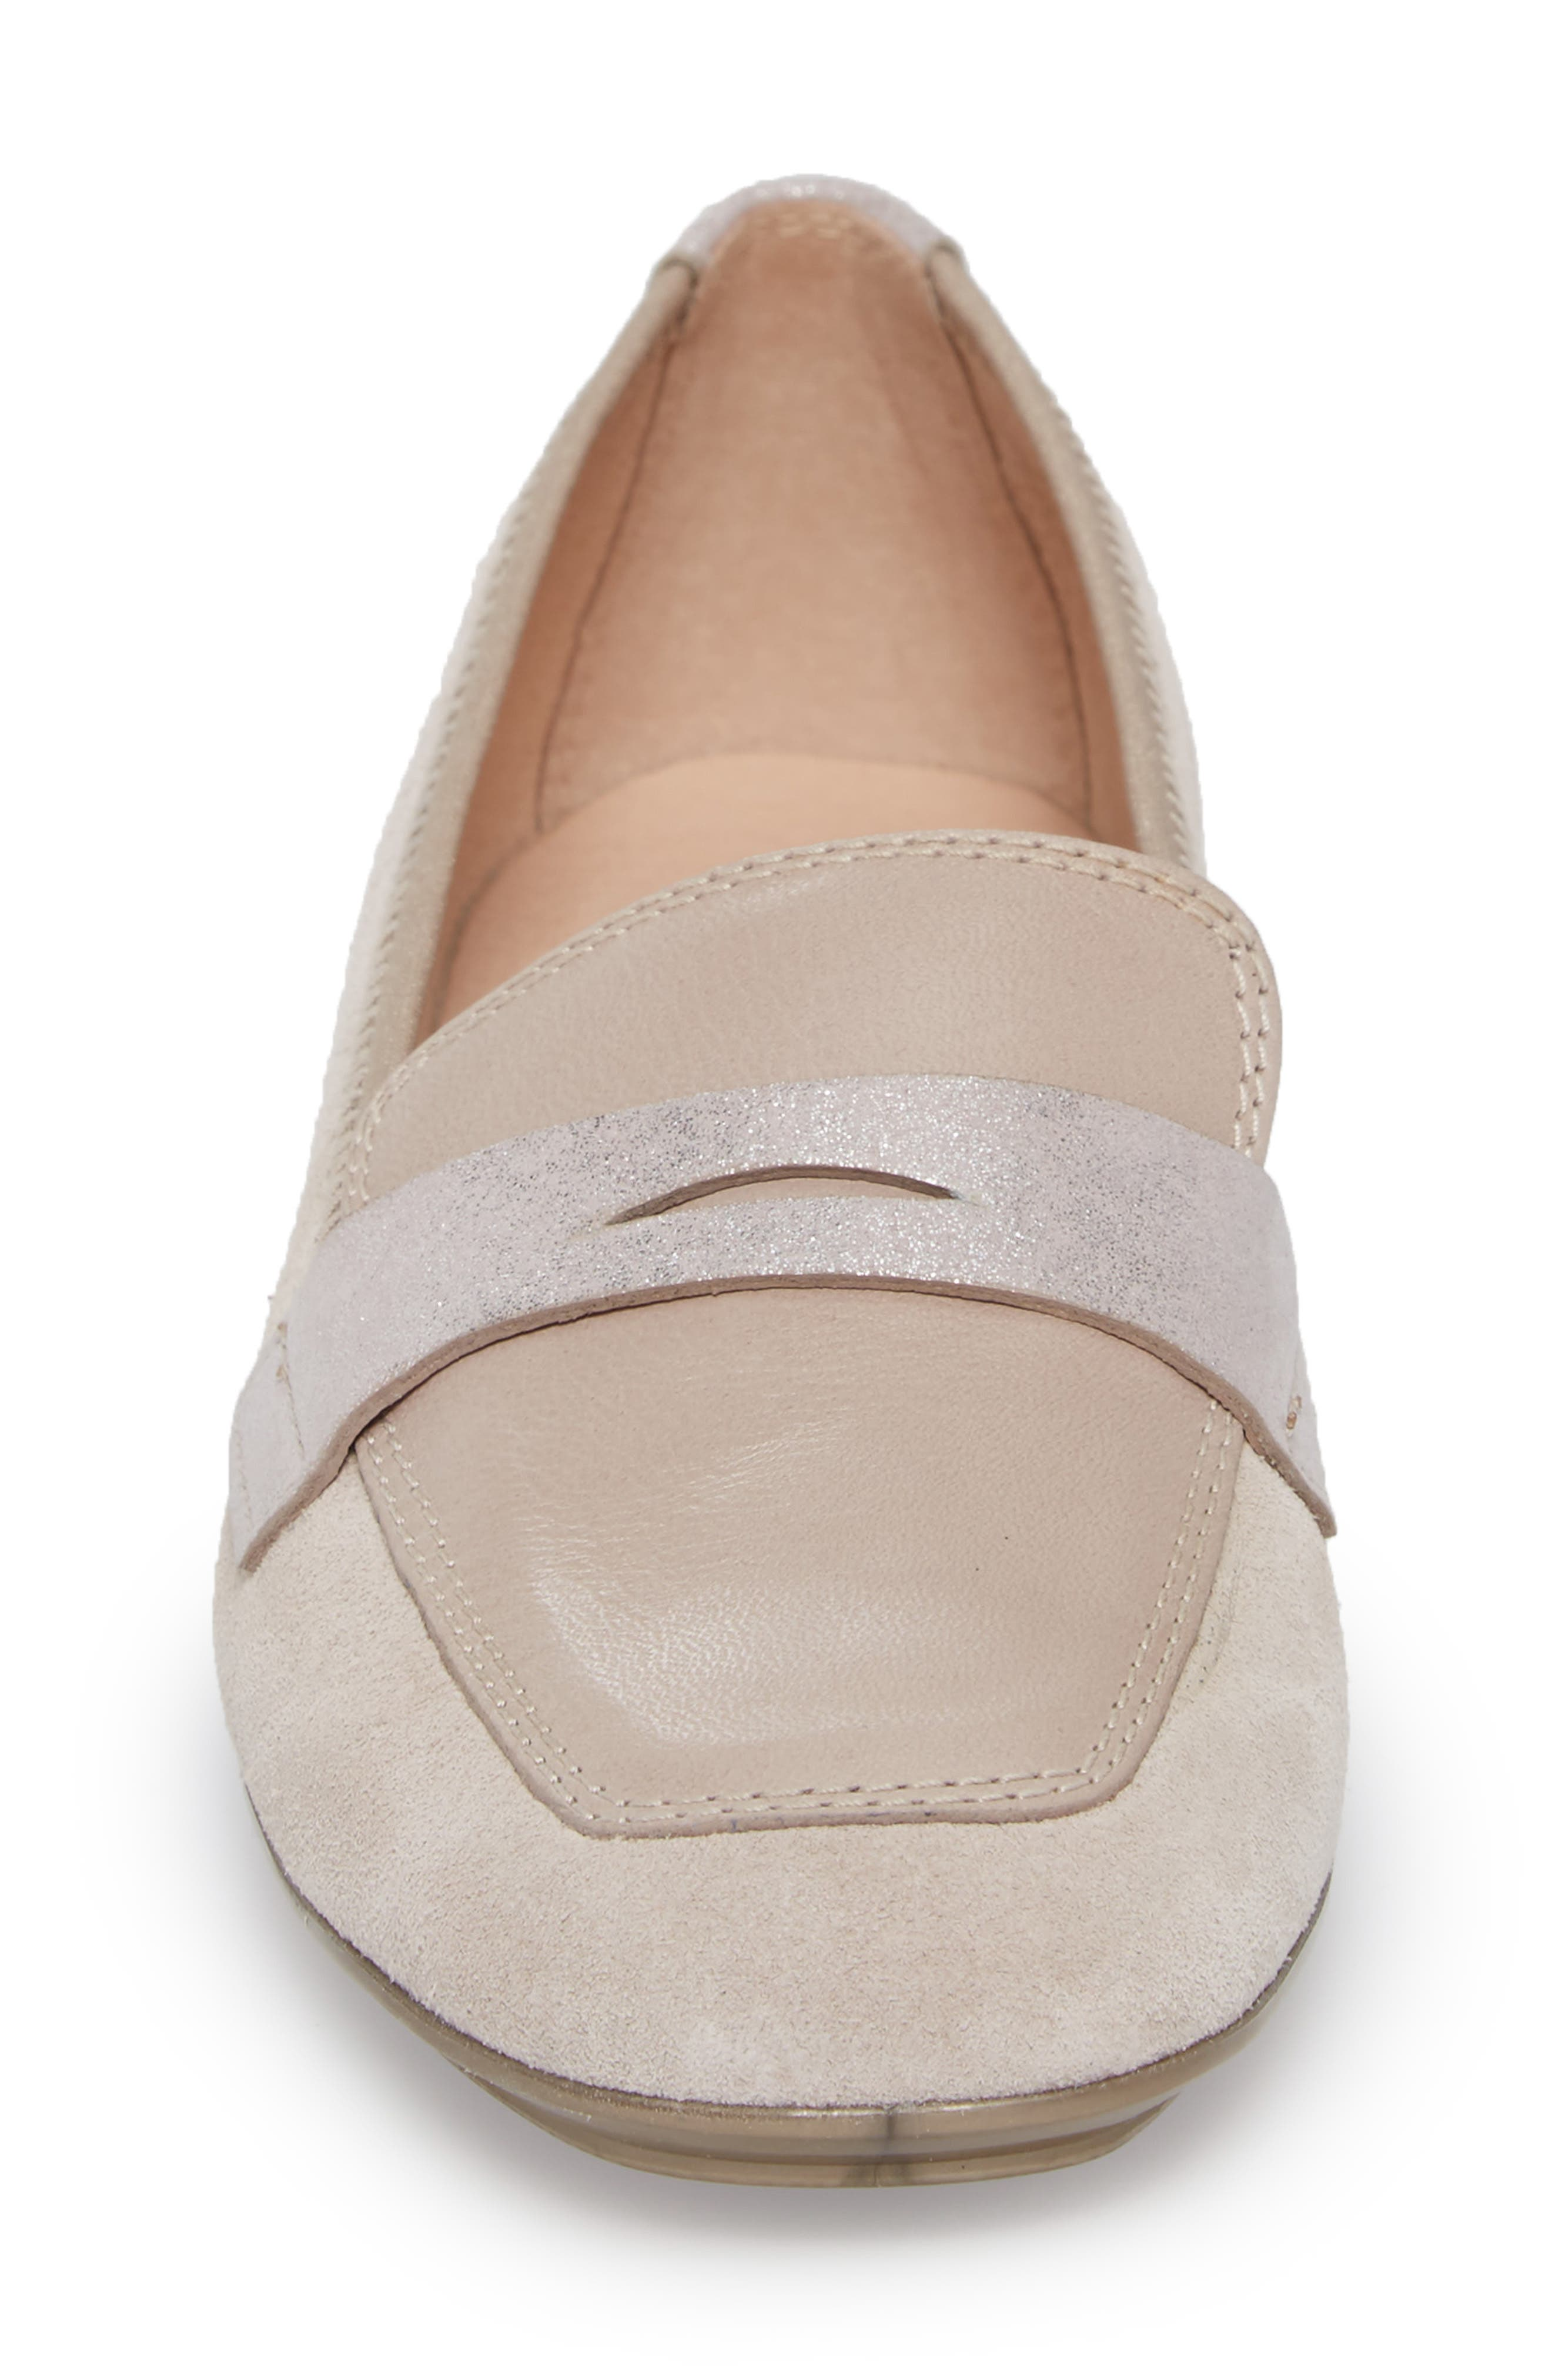 Indie Loafer,                             Alternate thumbnail 4, color,                             250